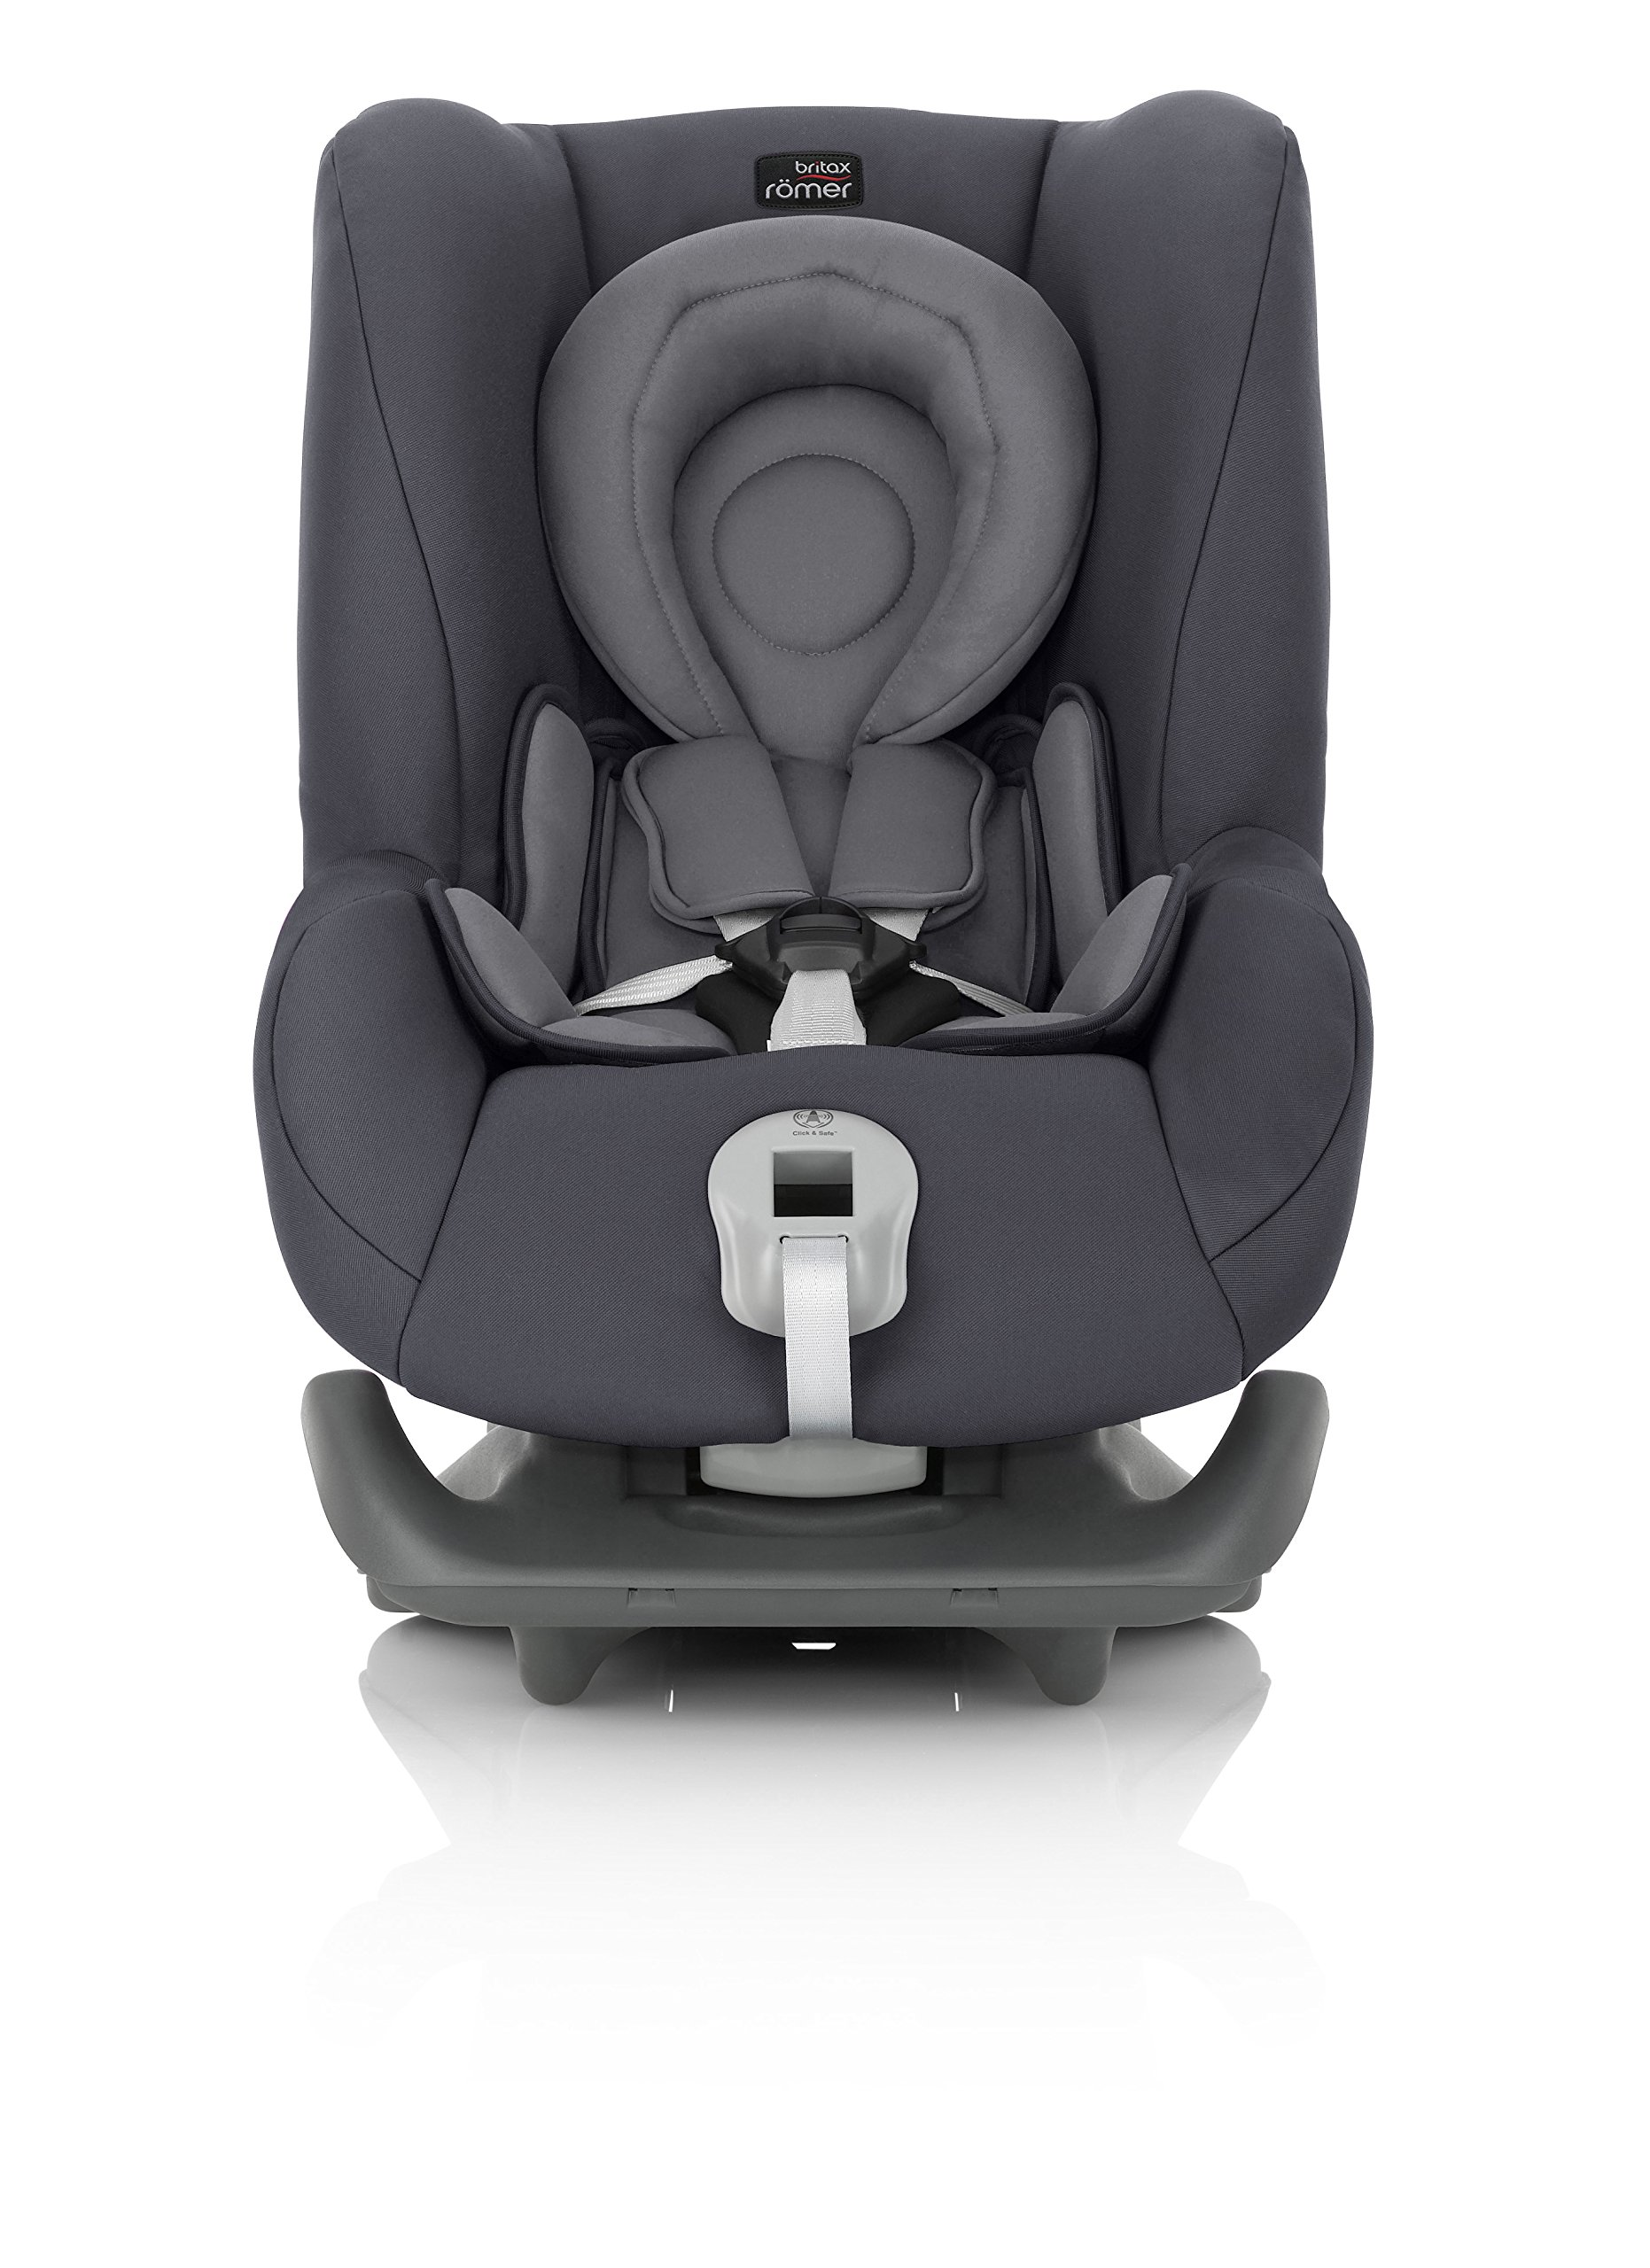 Britax Römer FIRST CLASS PLUS Group 0+/1 (Birth-18kg) Car Seat - Storm Grey  Extended recline position when rearward facing - the safest way to travel Reassurance built-in - Click and safe harness tensioning confirmation High quality protection - side impact protection Plus performance chest pads and pitch control system 3